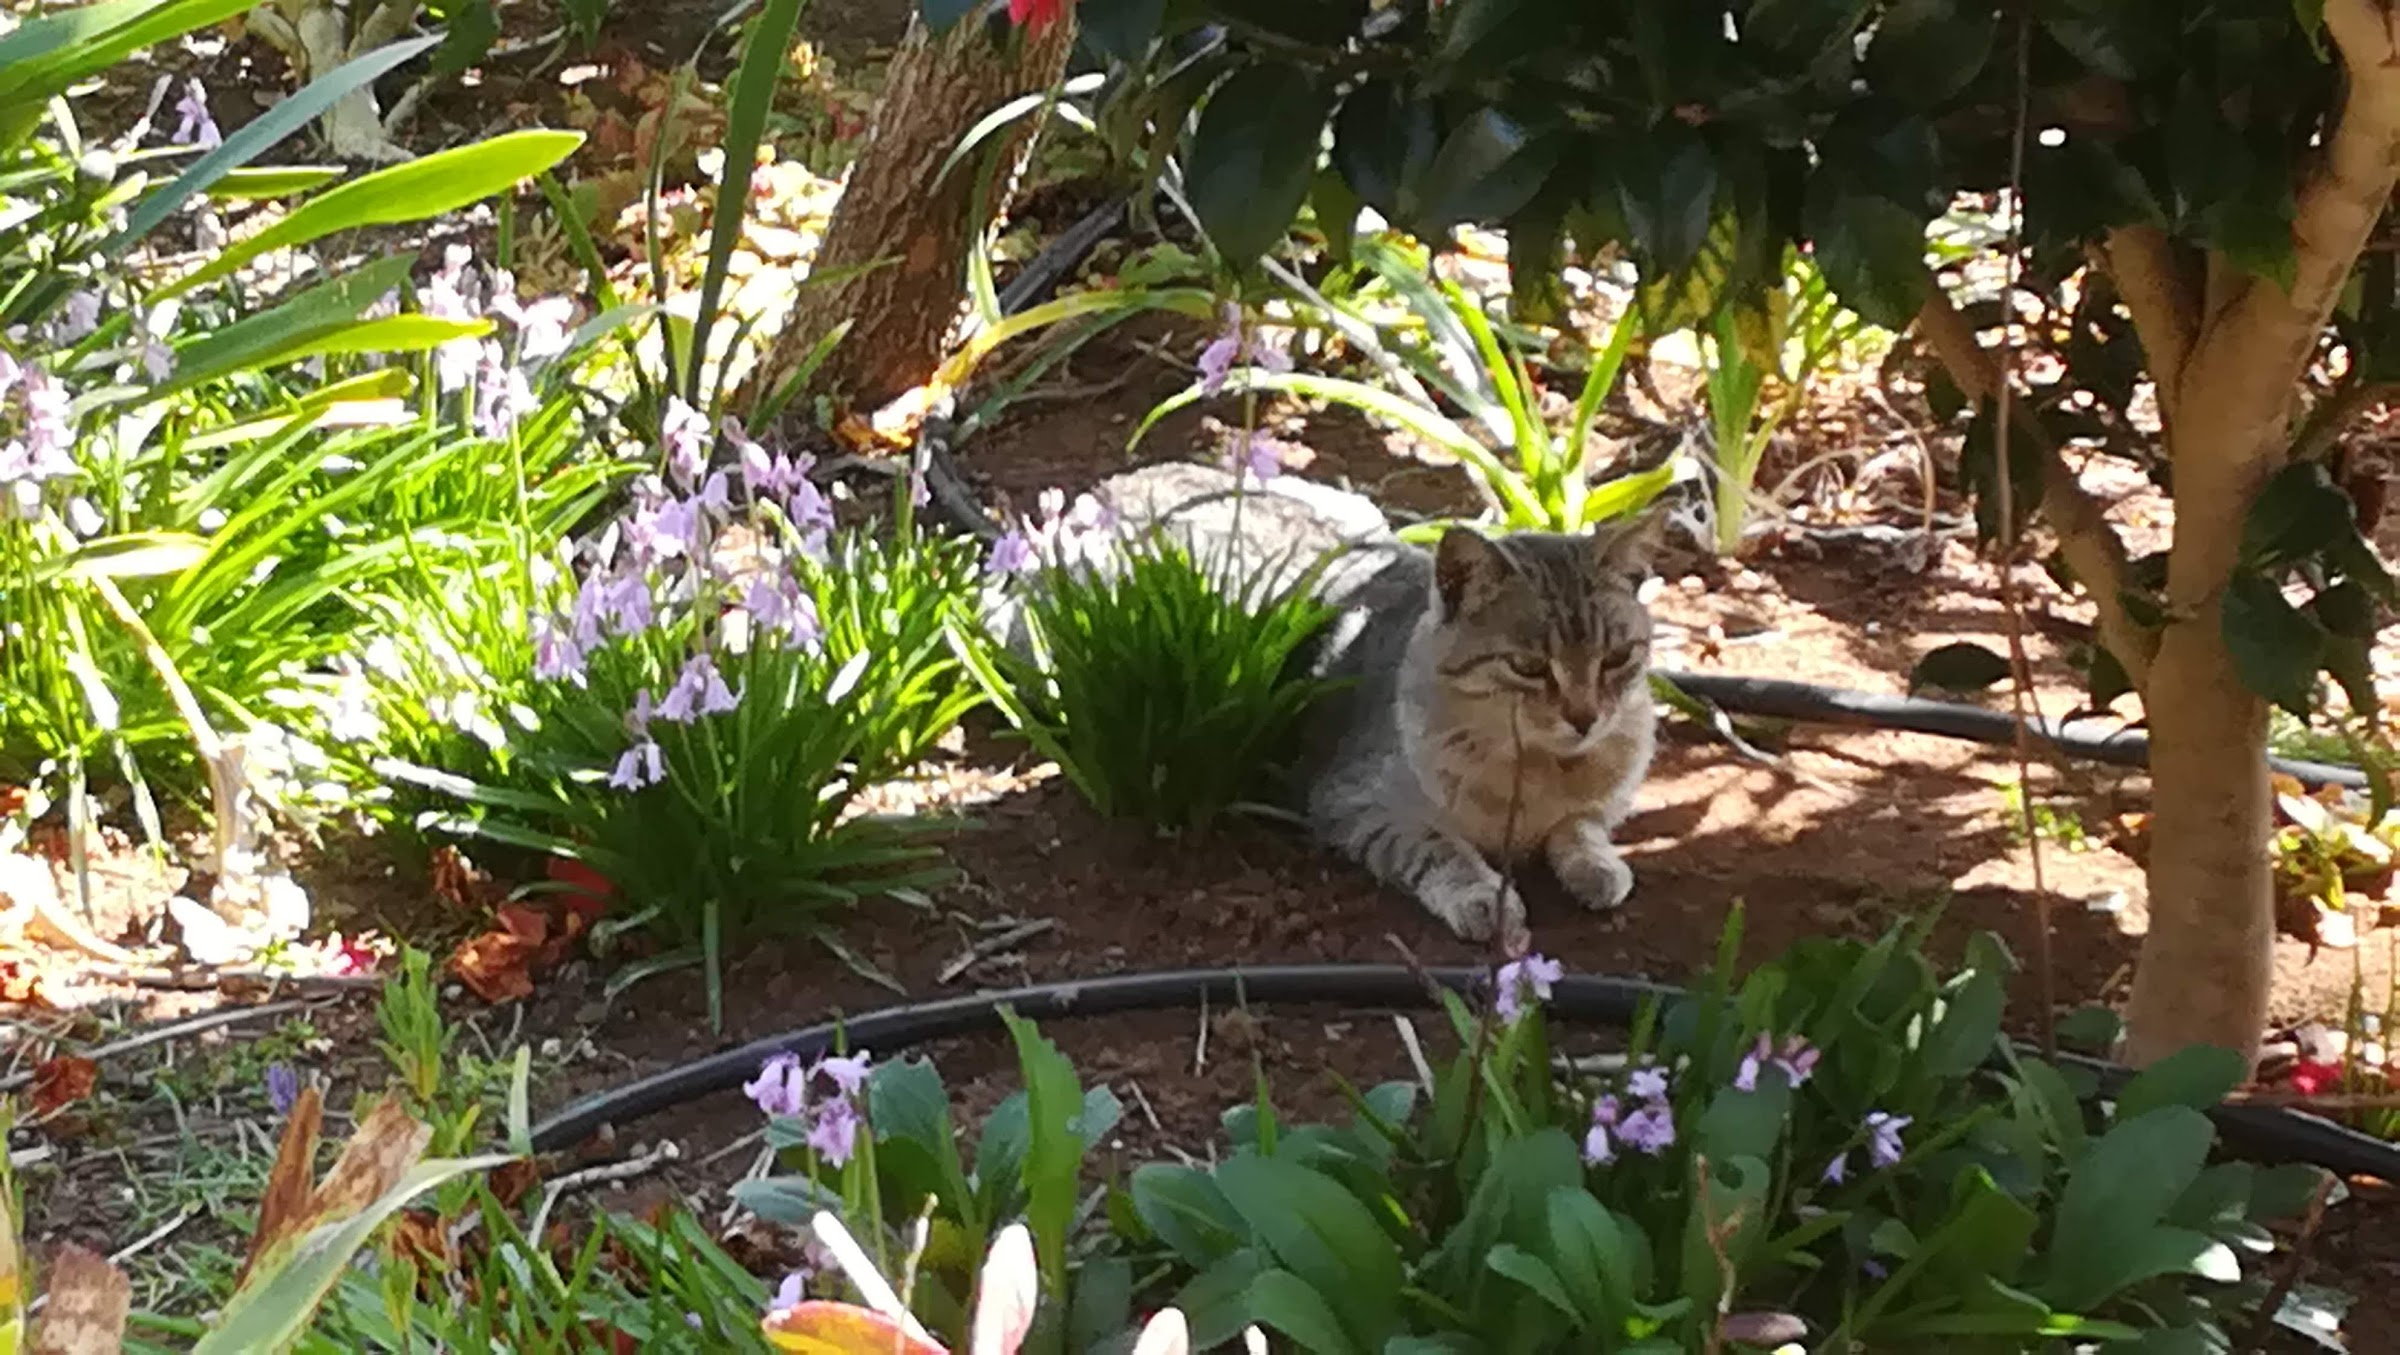 a not quite feral tomcat in our garden. He can take care of himself and keeps vermin away!